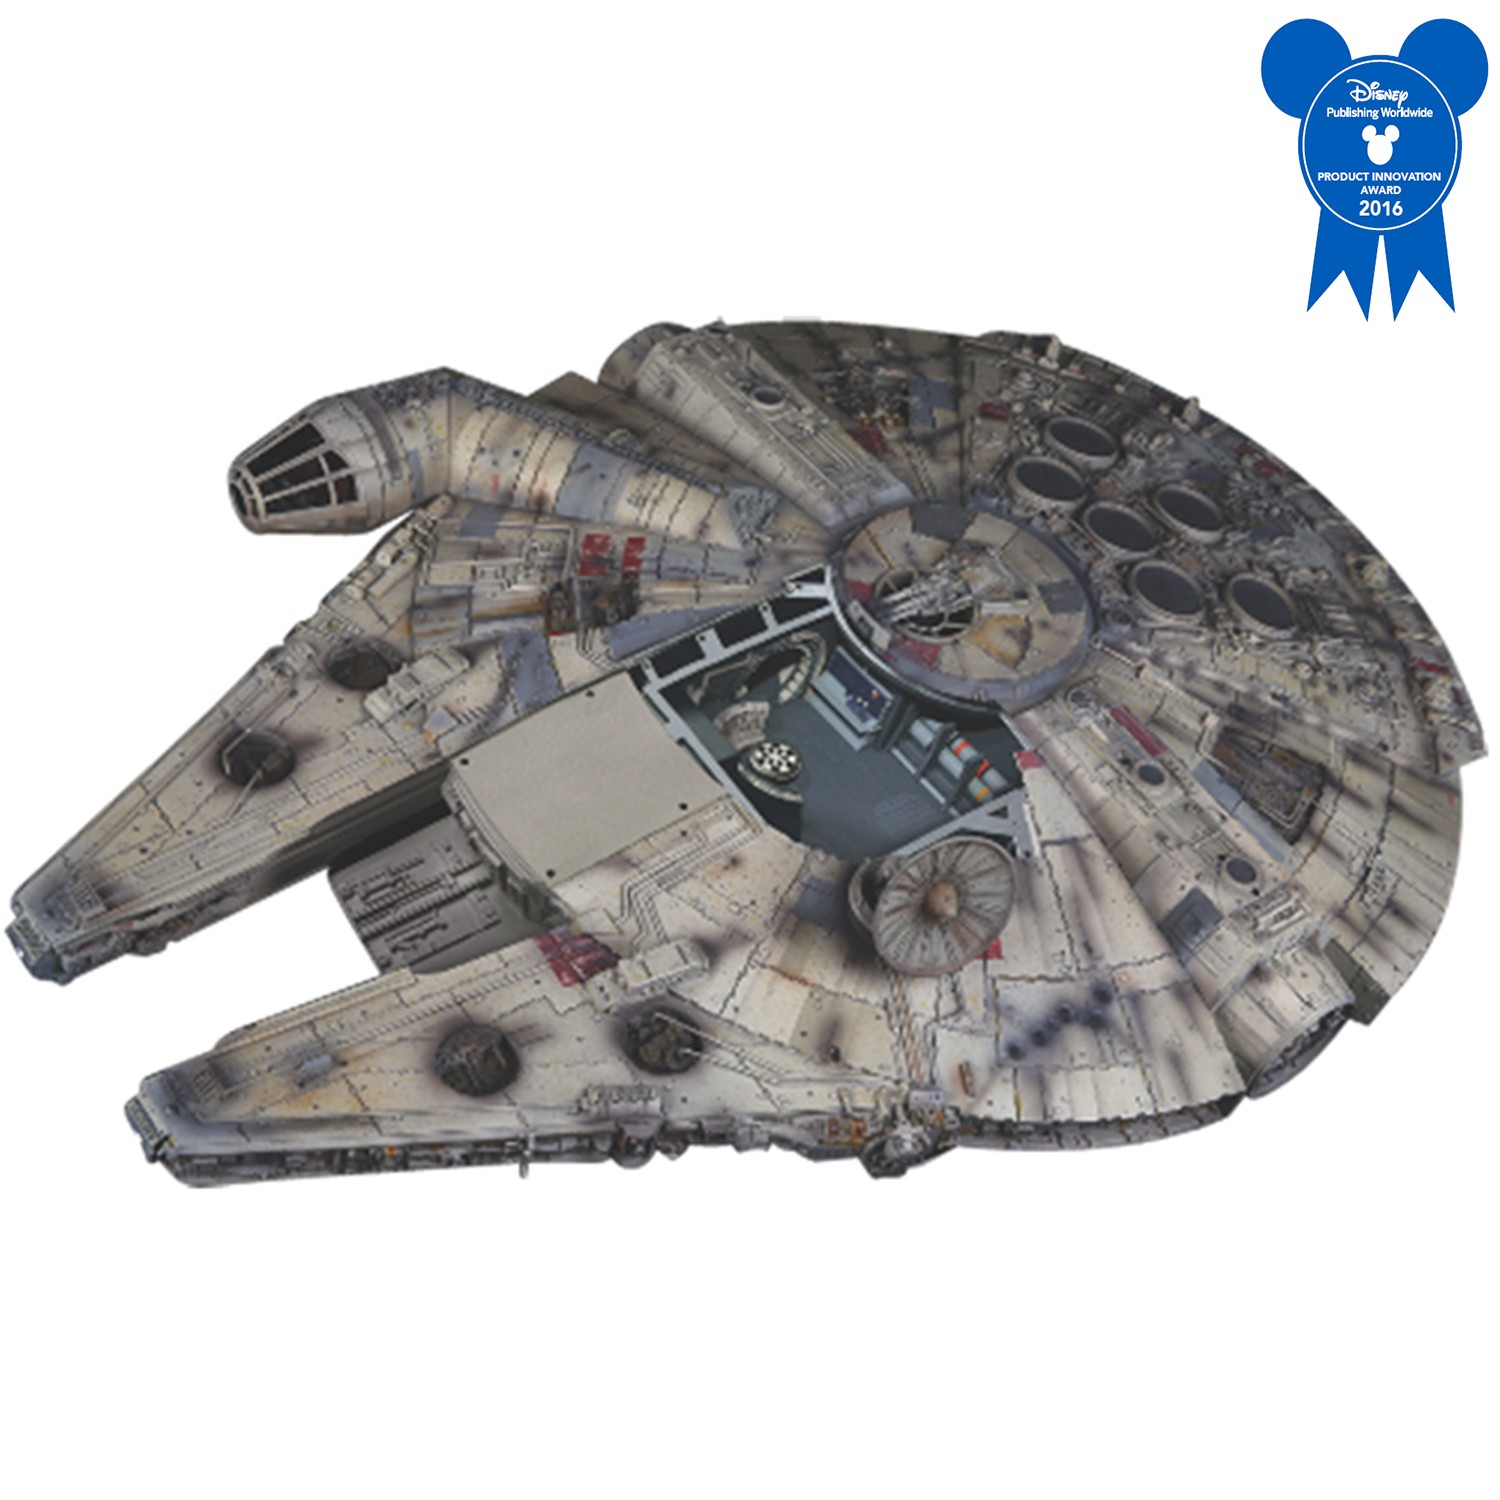 military rc planes with Build Millennium Falcon on Attachment besides Watch as well Build The Millennium Falcon Model furthermore The Millennium Falcon Five Facts Every Star Wars Fan Should Know also Build The Akagi Full Kit.